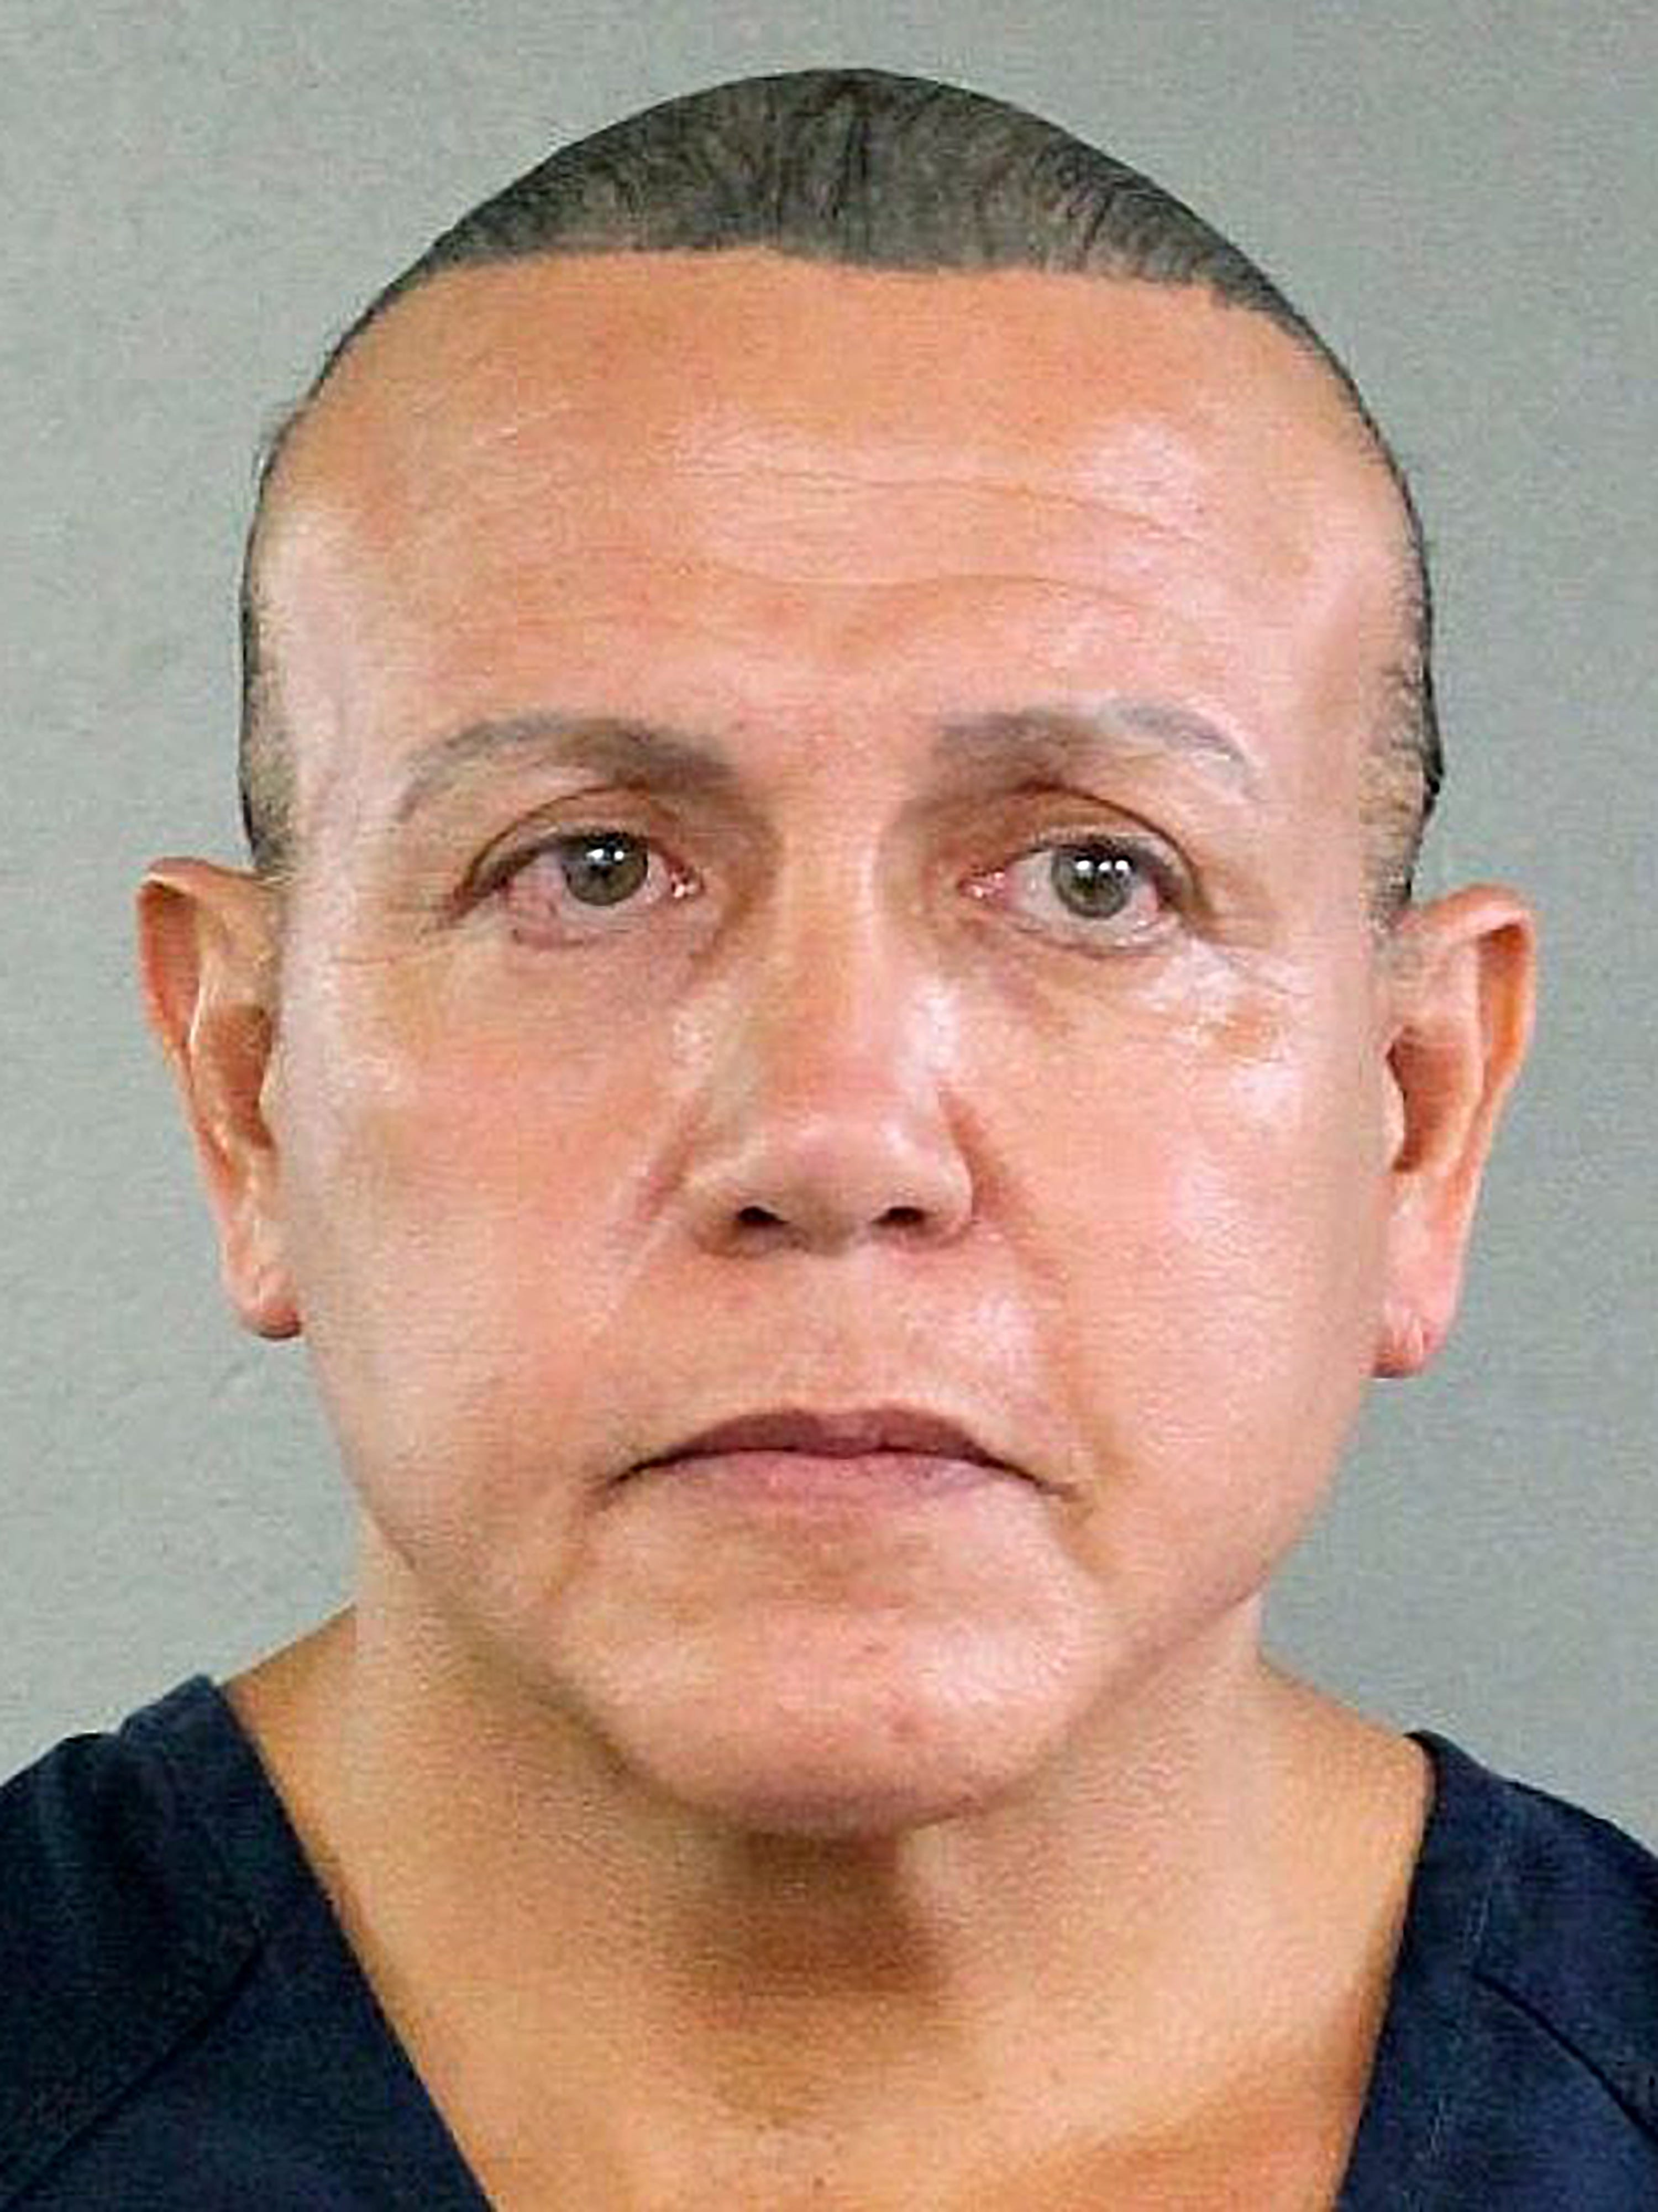 Pipe bomb suspect Cesar Sayoc expected to plead guilty in spree aimed at Trump critics, including Obama, Biden and Clinton